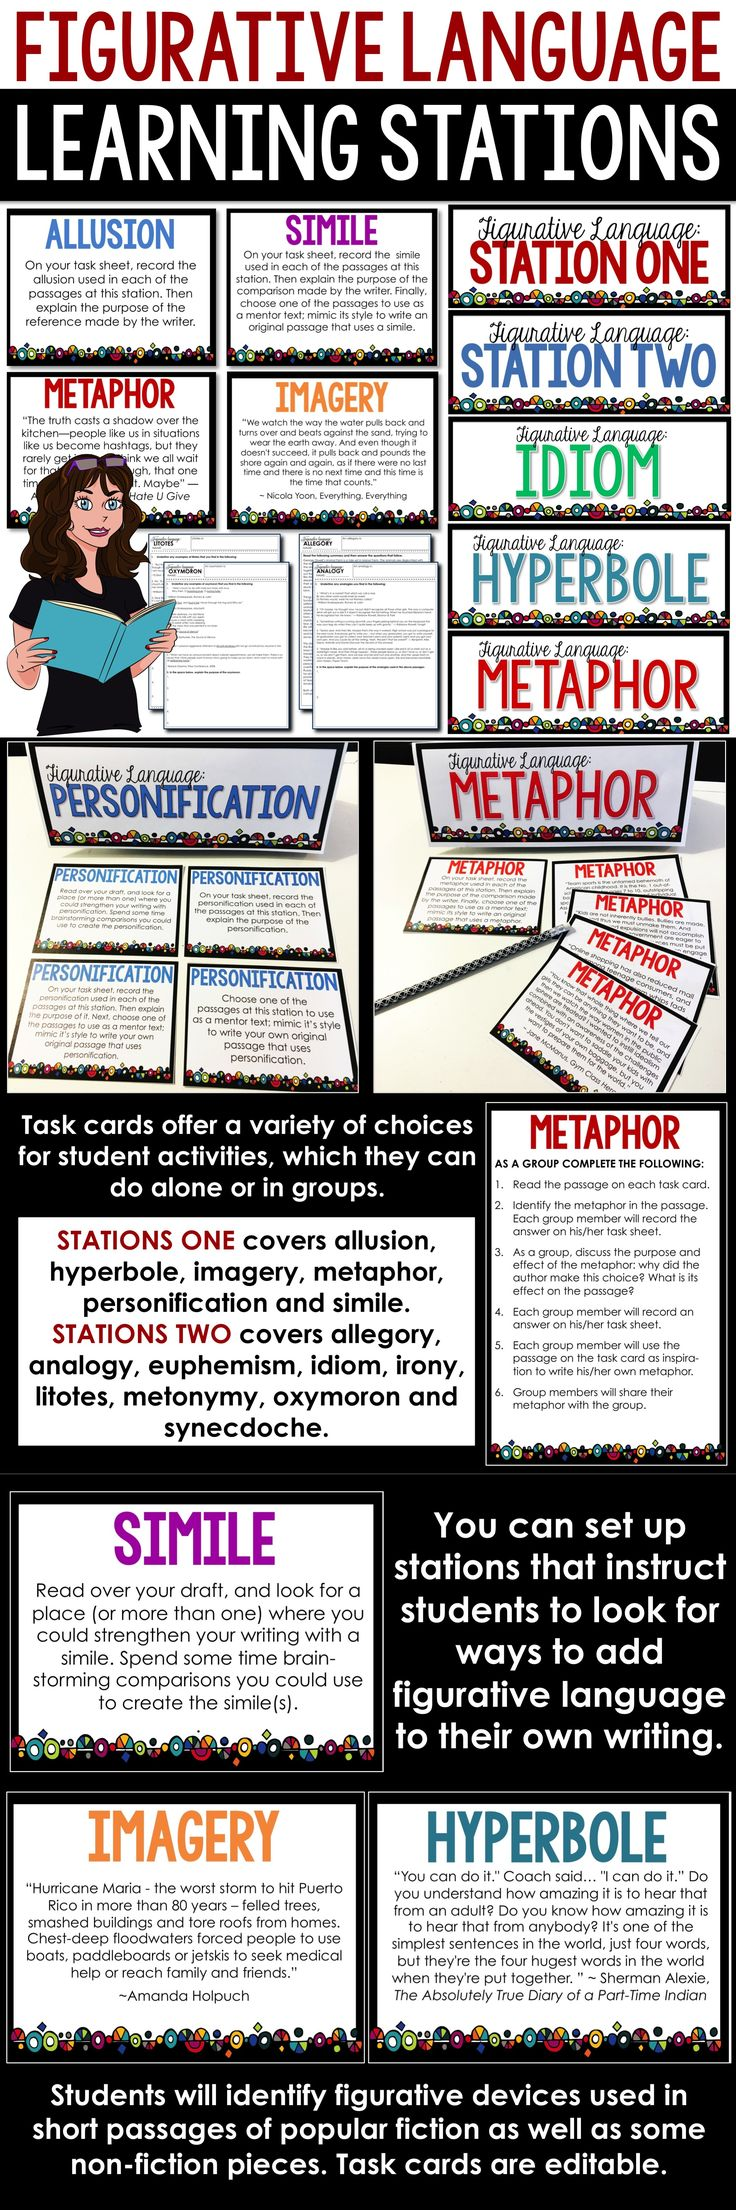 Figurative Language Activities: English teachers, do your students need help with understanding and using figurative language? These stations offer you multiple ways to engage your student in learning about these devices while you get them up and moving!